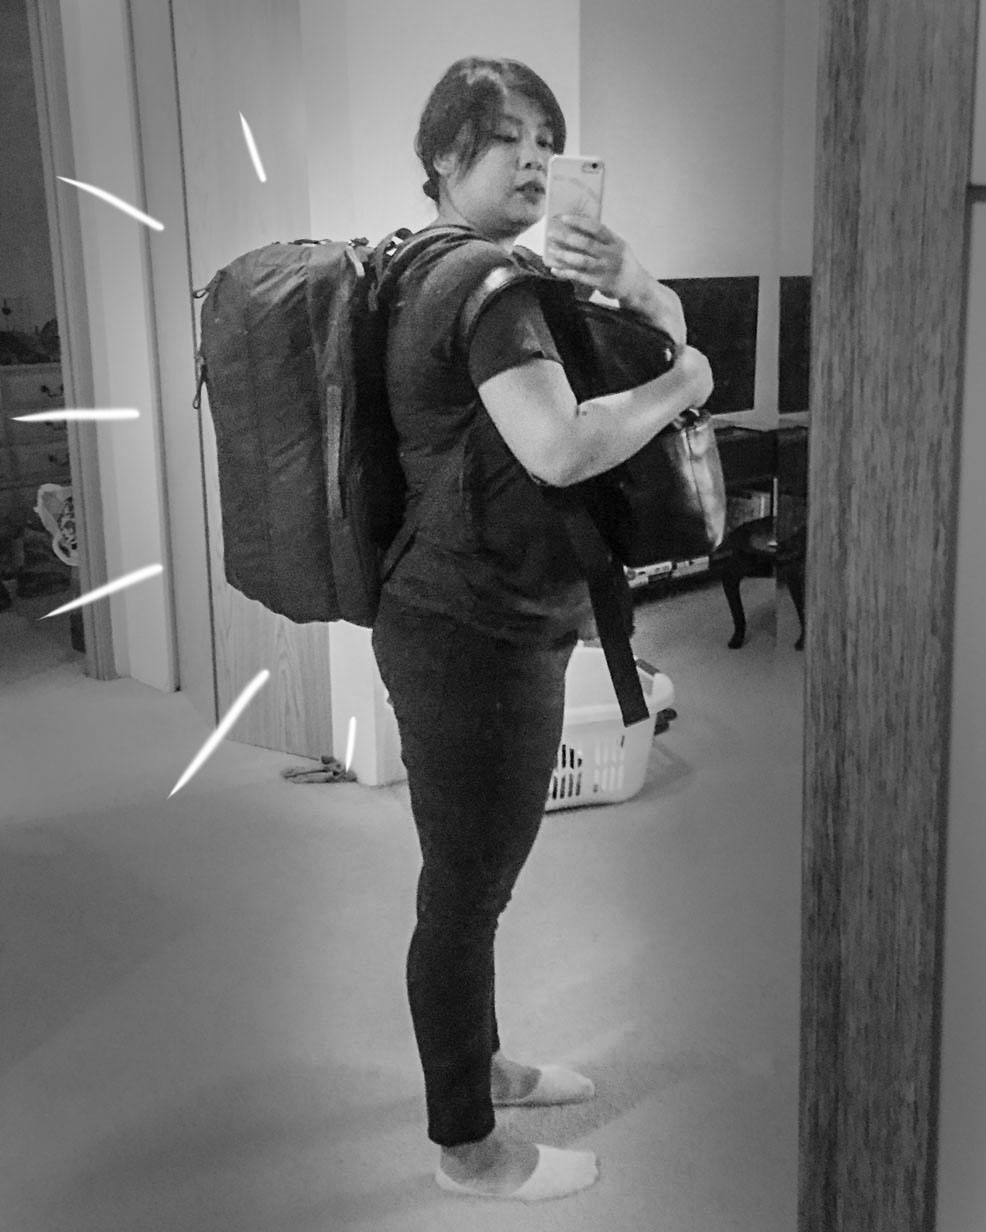 Amy with her backpacks